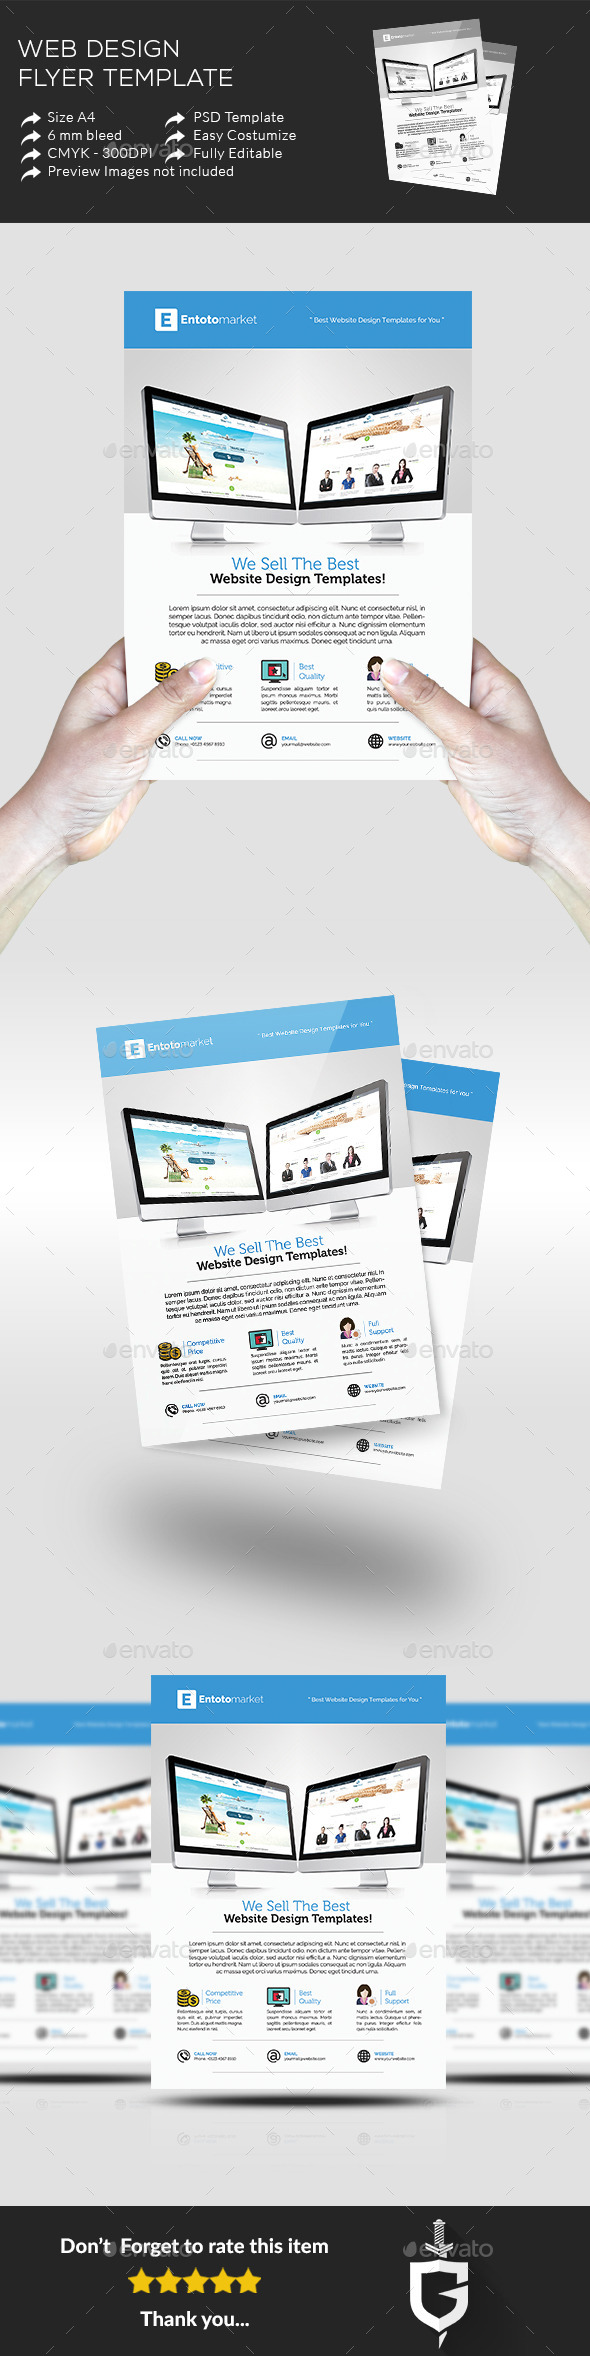 Web Design Flyer Template - Commerce Flyers